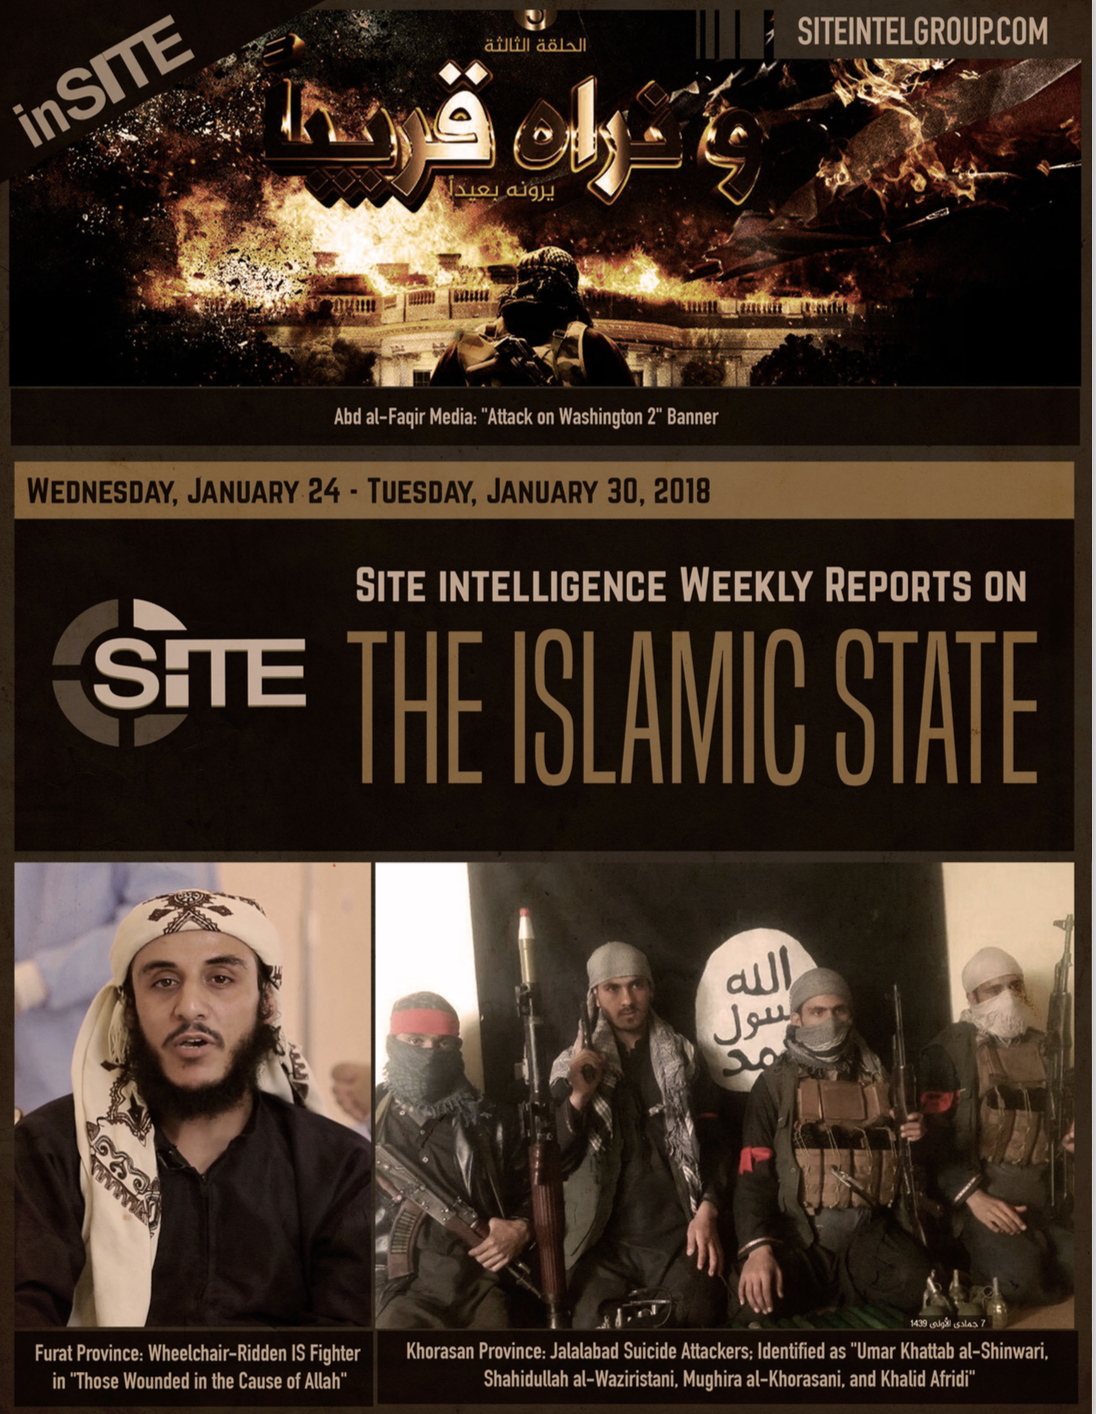 Weekly inSITE on the Islamic State, January 24-30, 2018